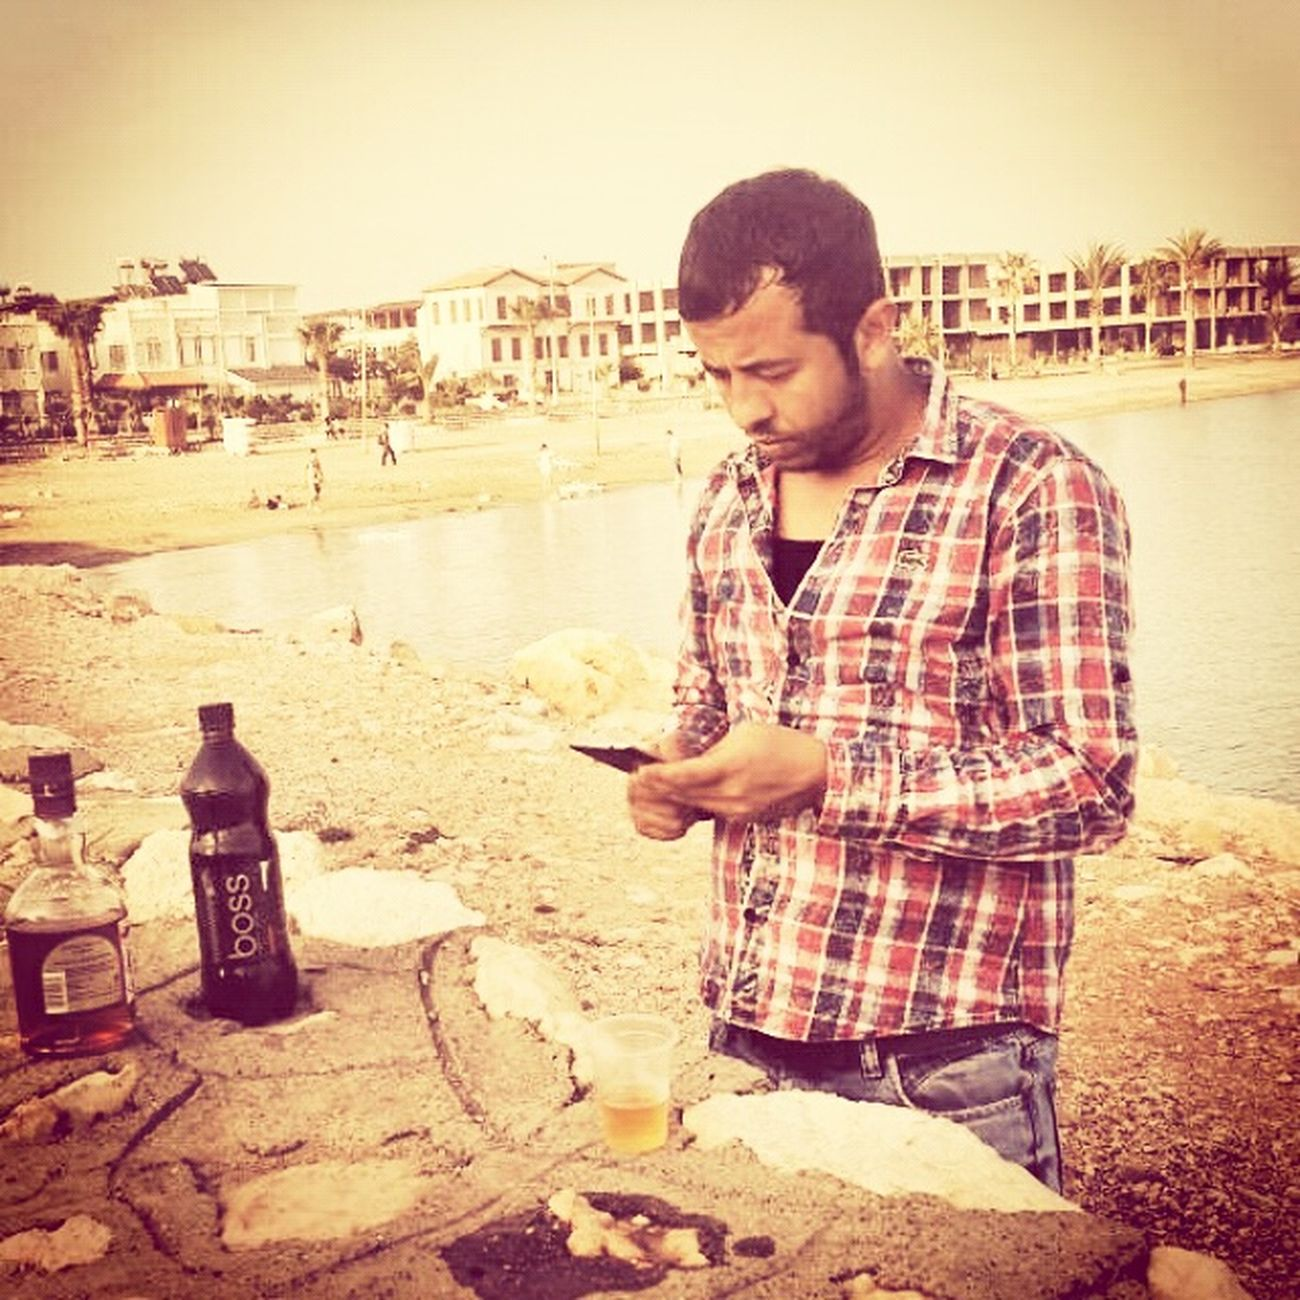 Chivas Regal Beach Relaxing Bad Boys Turkey Ankara aksam aksam √√